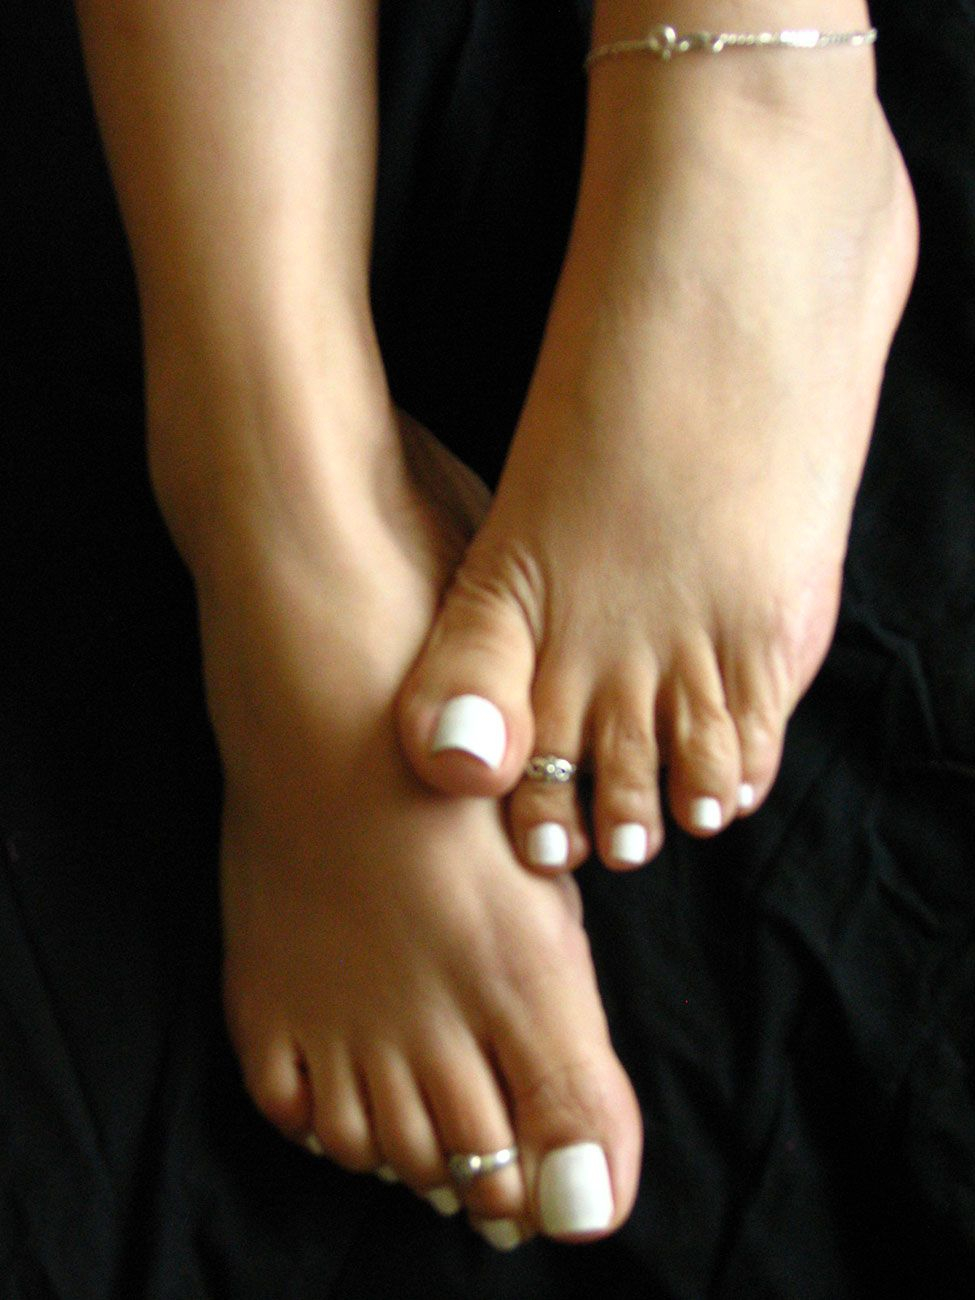 Female pointing toes fetish pictures